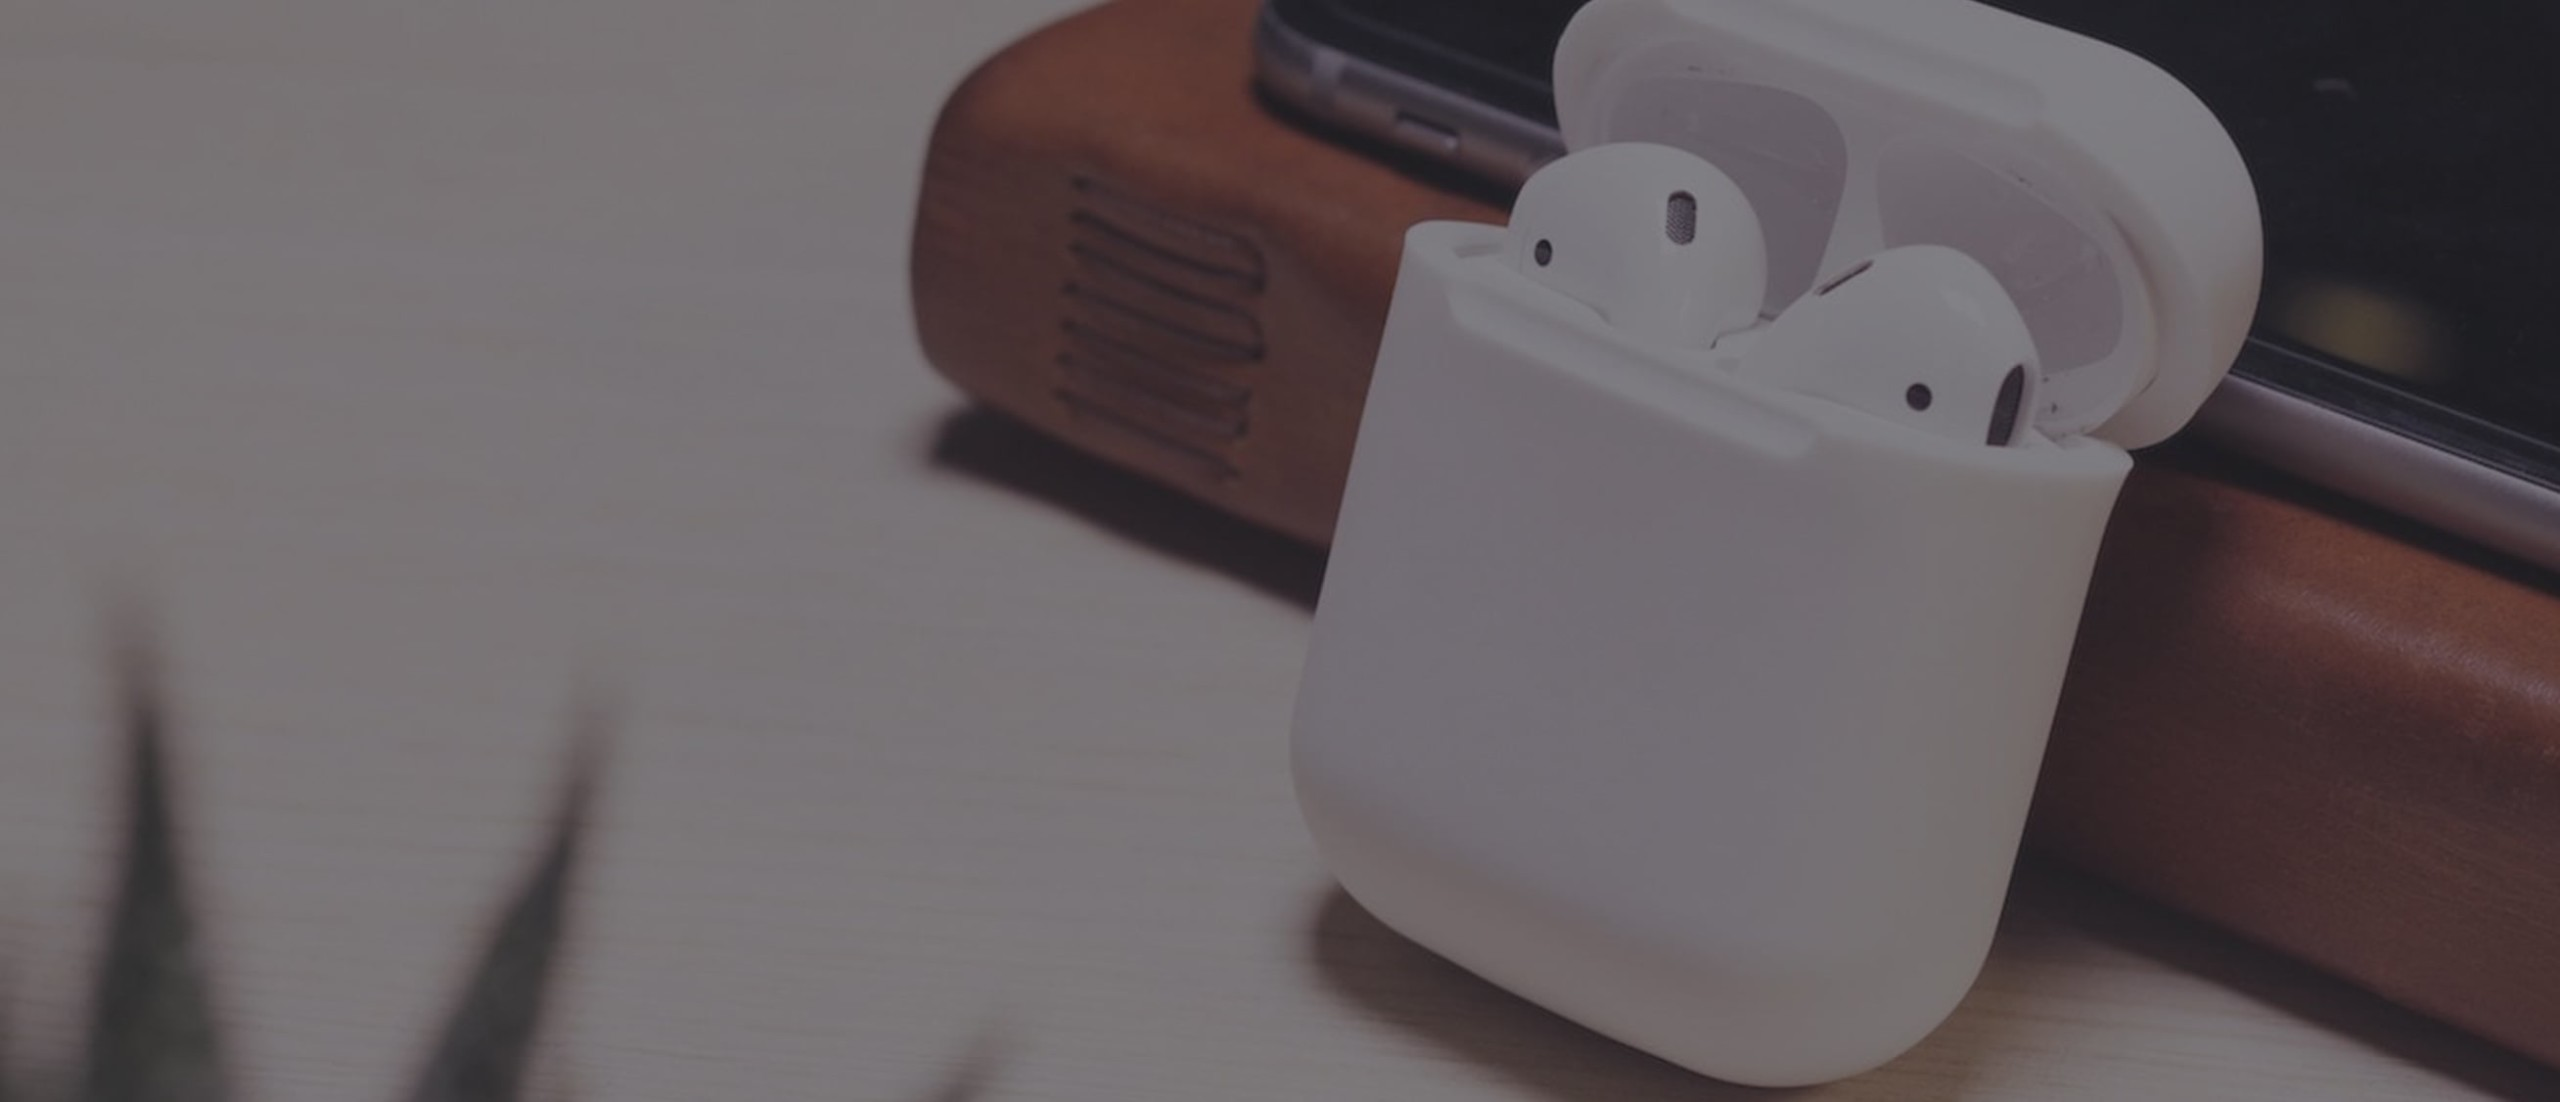 AirPlus Wireless AirPods Charging Case